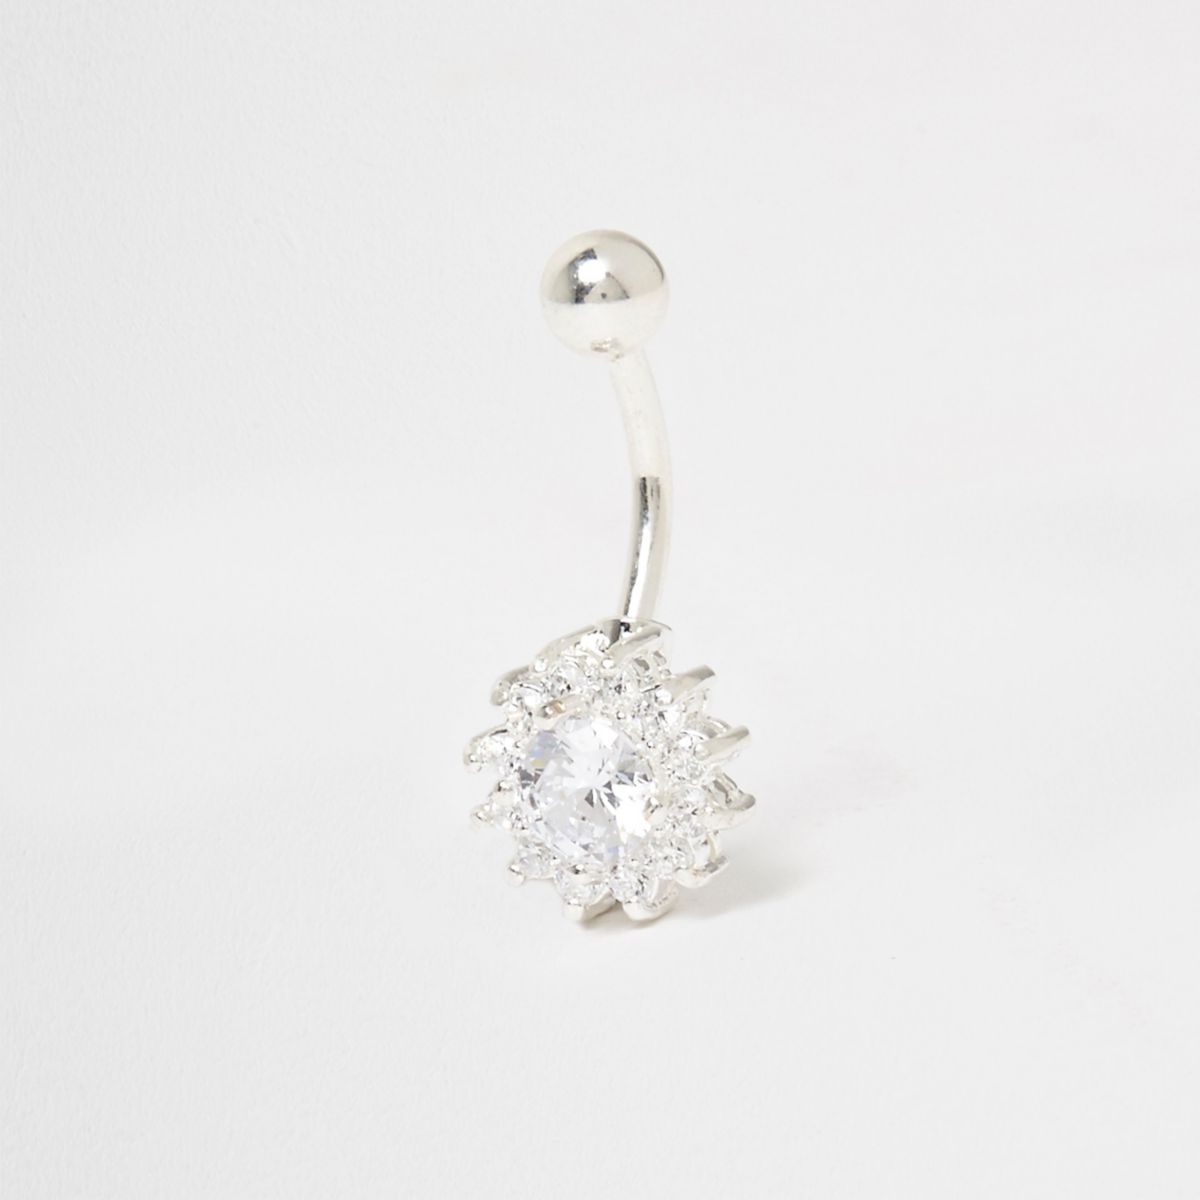 Silver tone cubic zirconia floral belly bar